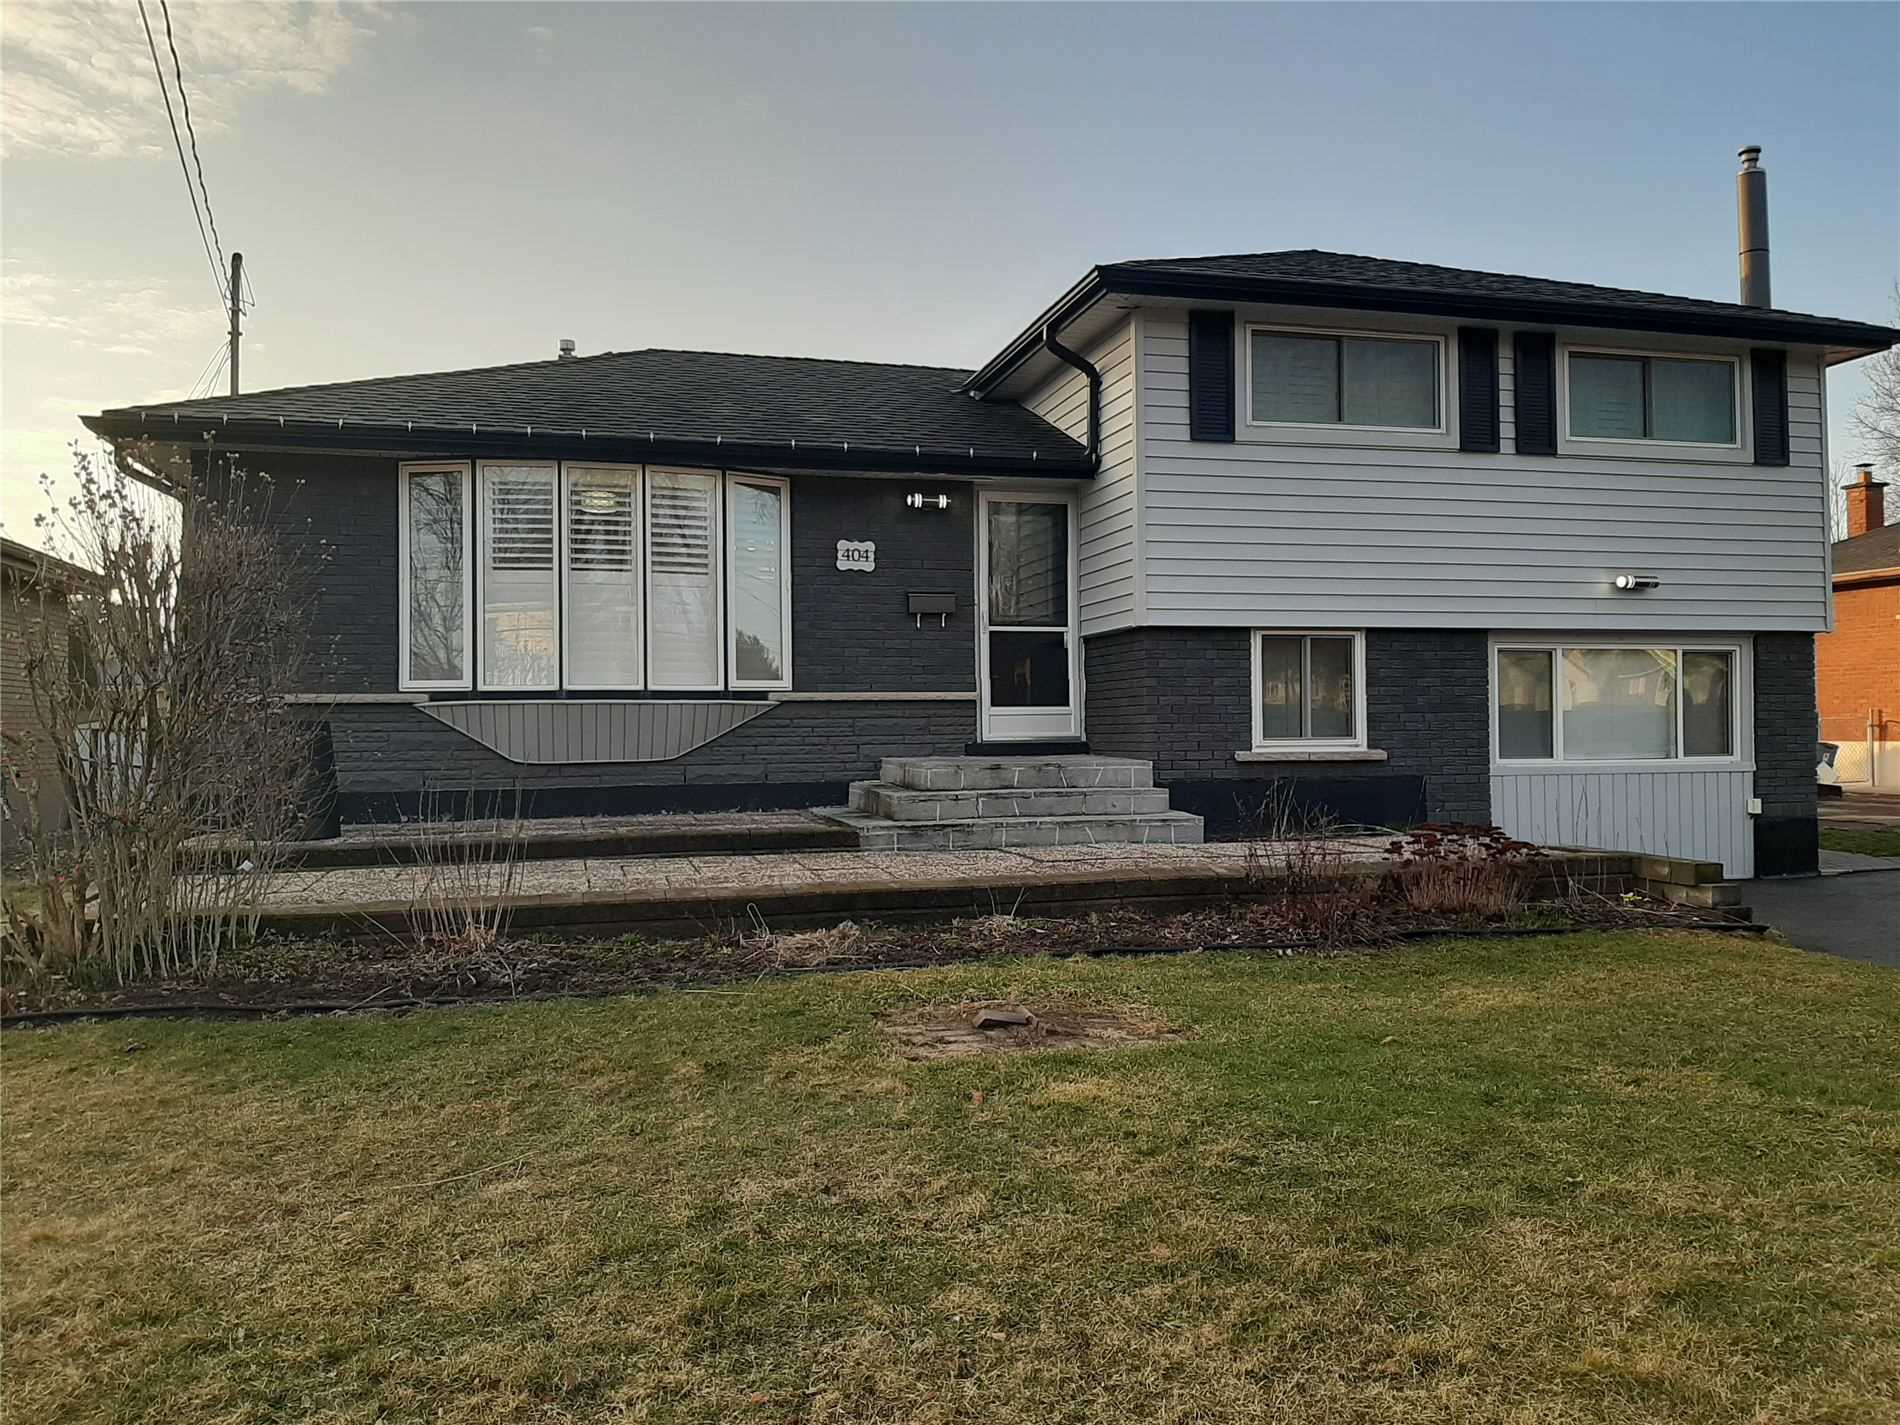 404 Enfield Rd, Burlington, L7T2X6, 3 Bedrooms Bedrooms, ,2 BathroomsBathrooms,Detached,For Sale,Enfield,W4730061